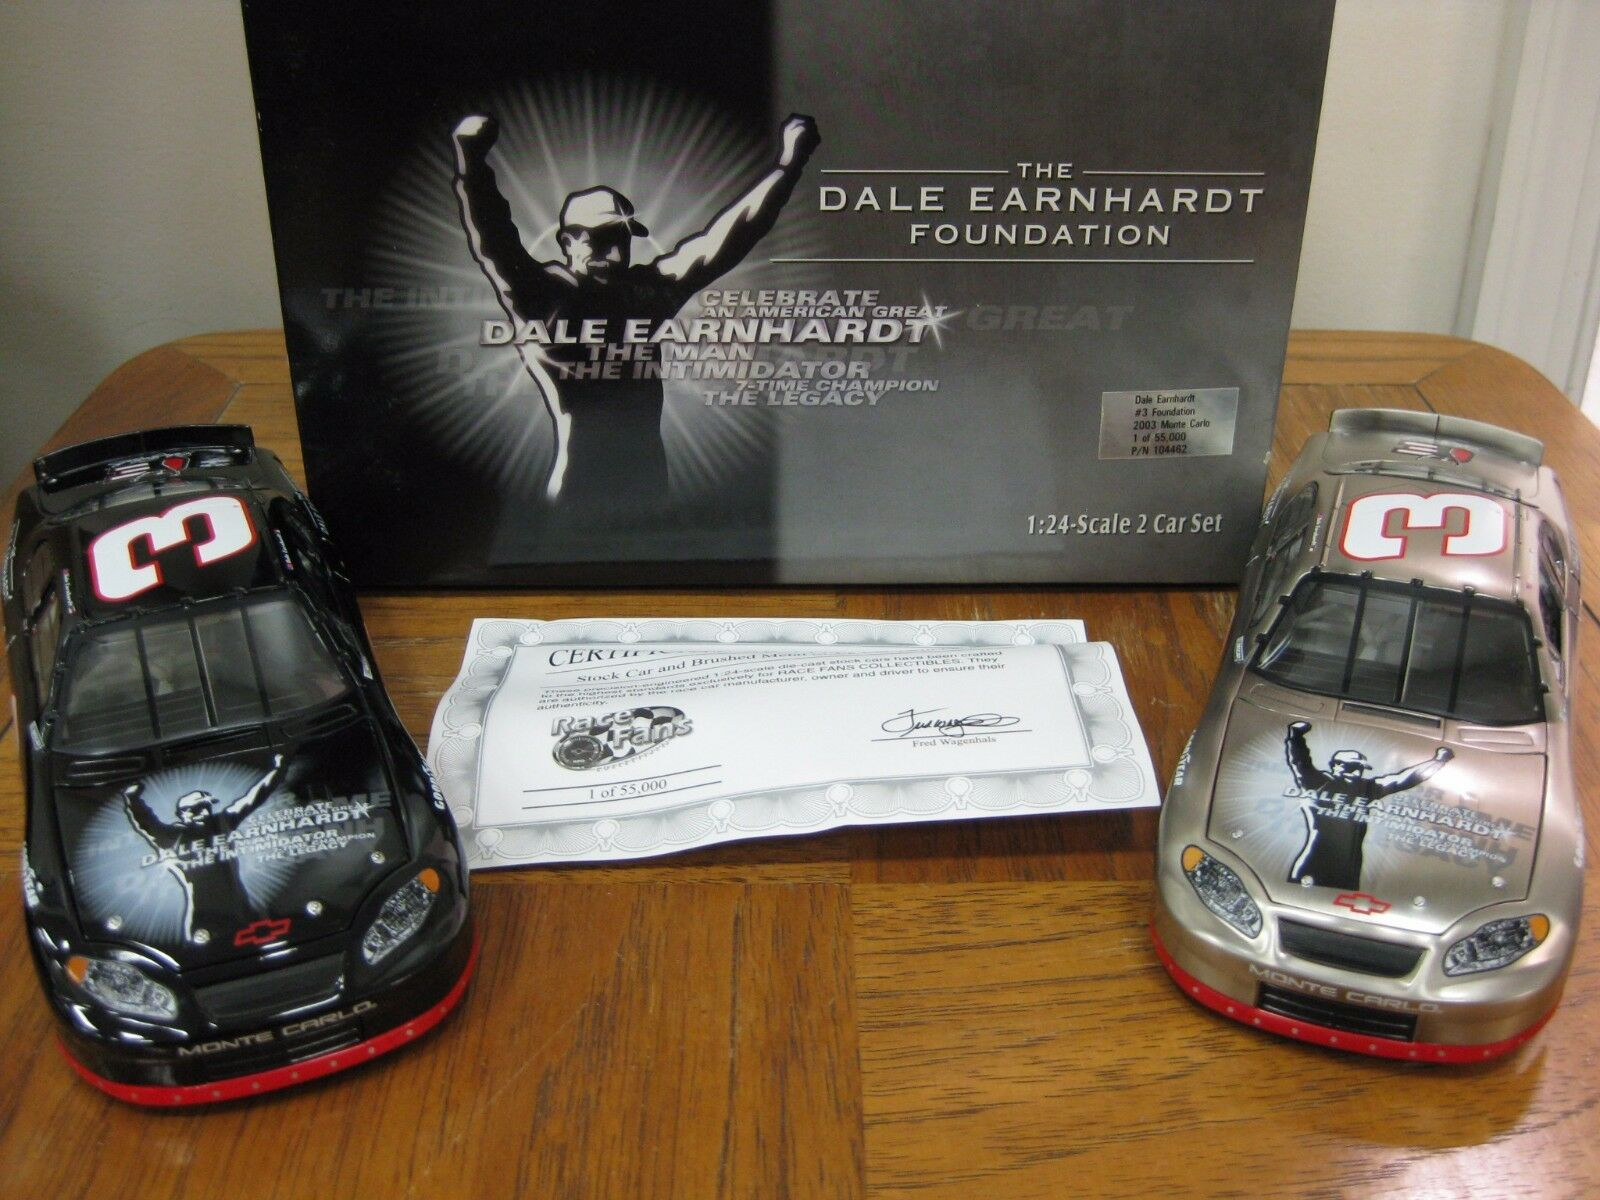 Dale Earnhardt  3 Foundation 2003  Monte voiturelo Two voiture Set 1 of 55,000 P N 104462  se hâta de voir